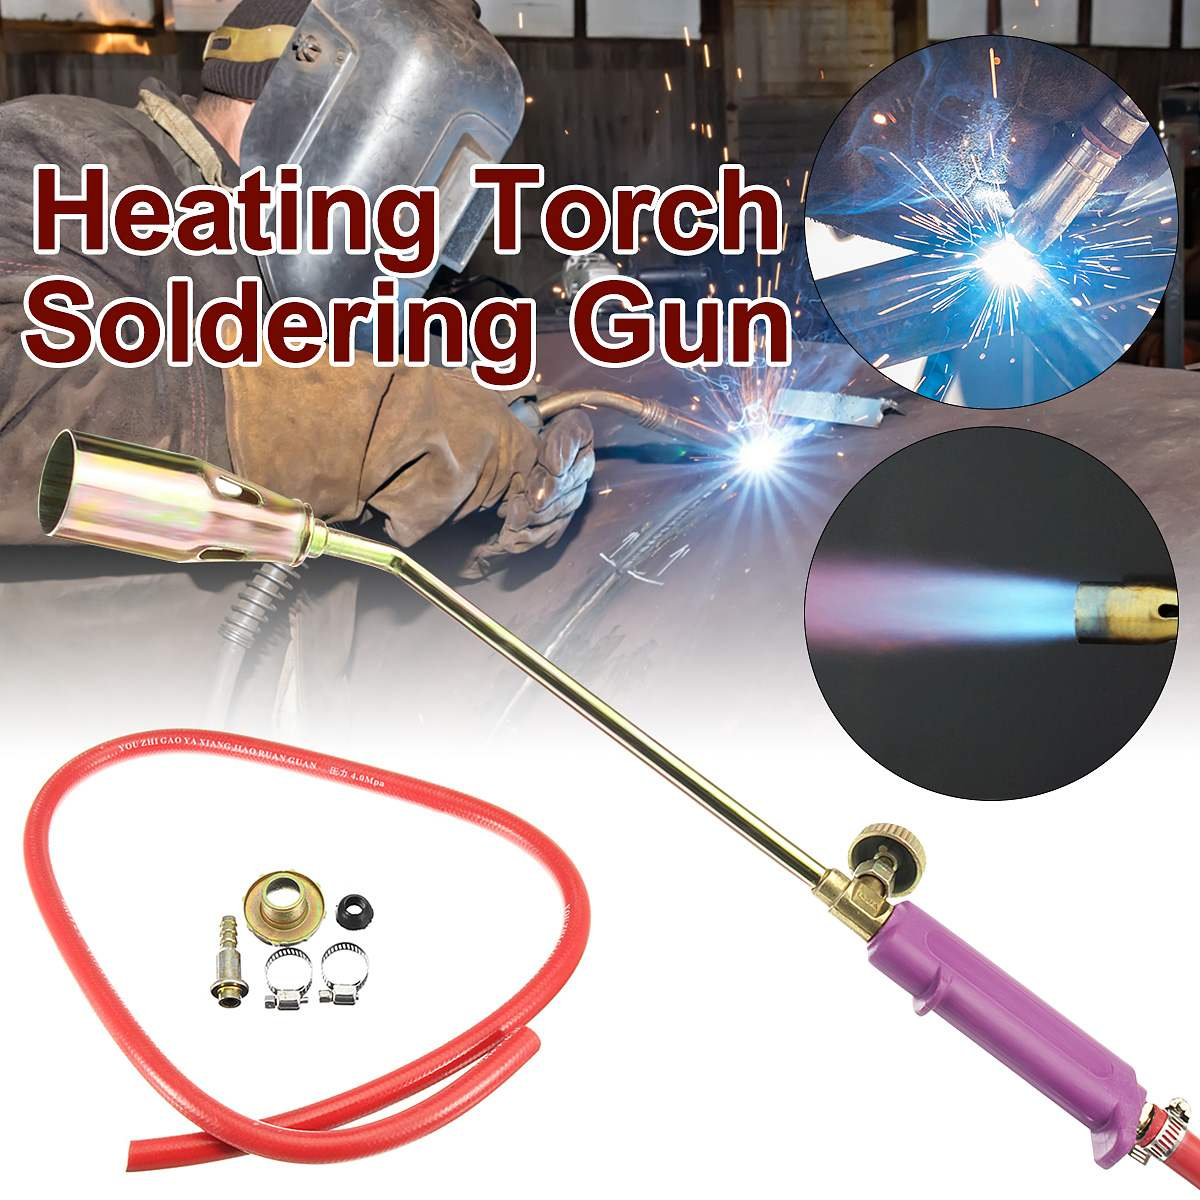 Heating Torch Propane Gas Blowing Plumber Roofing Soldering Gu N Pipe Roof Welding Torches